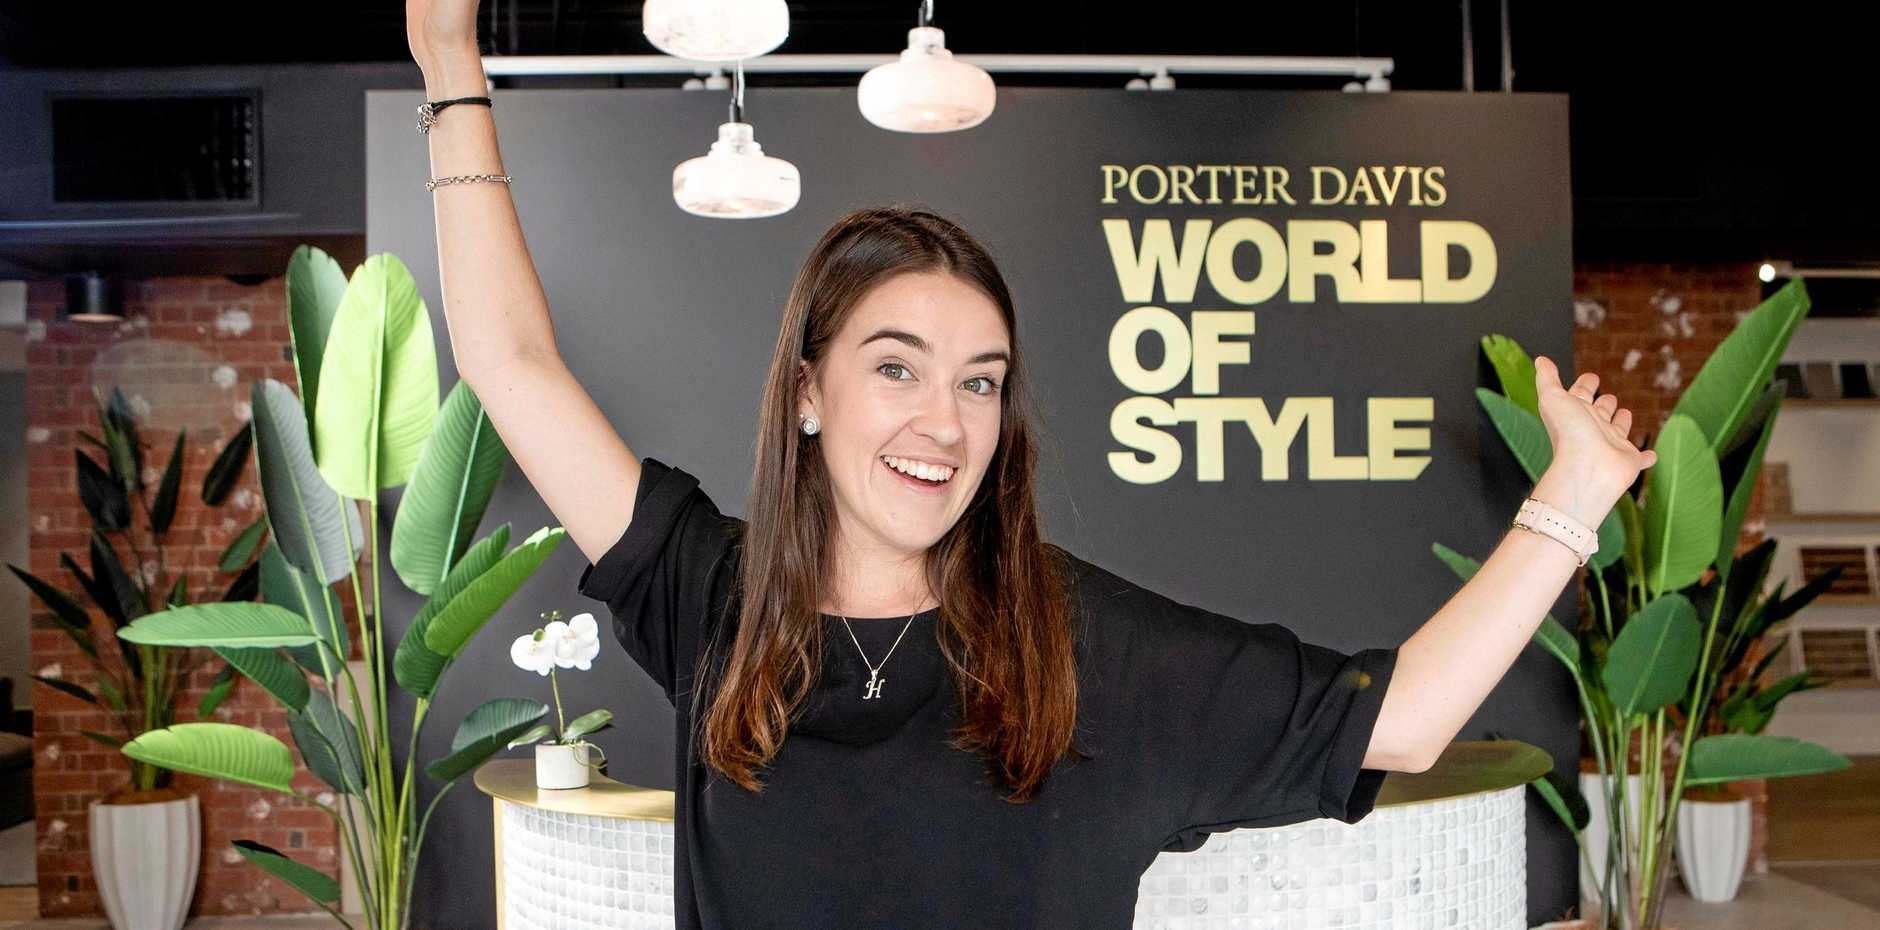 Marcus Beach woman Holly Wykamp, 23, has won $50,000 to go towards building her first home in a Porter Davis competition.